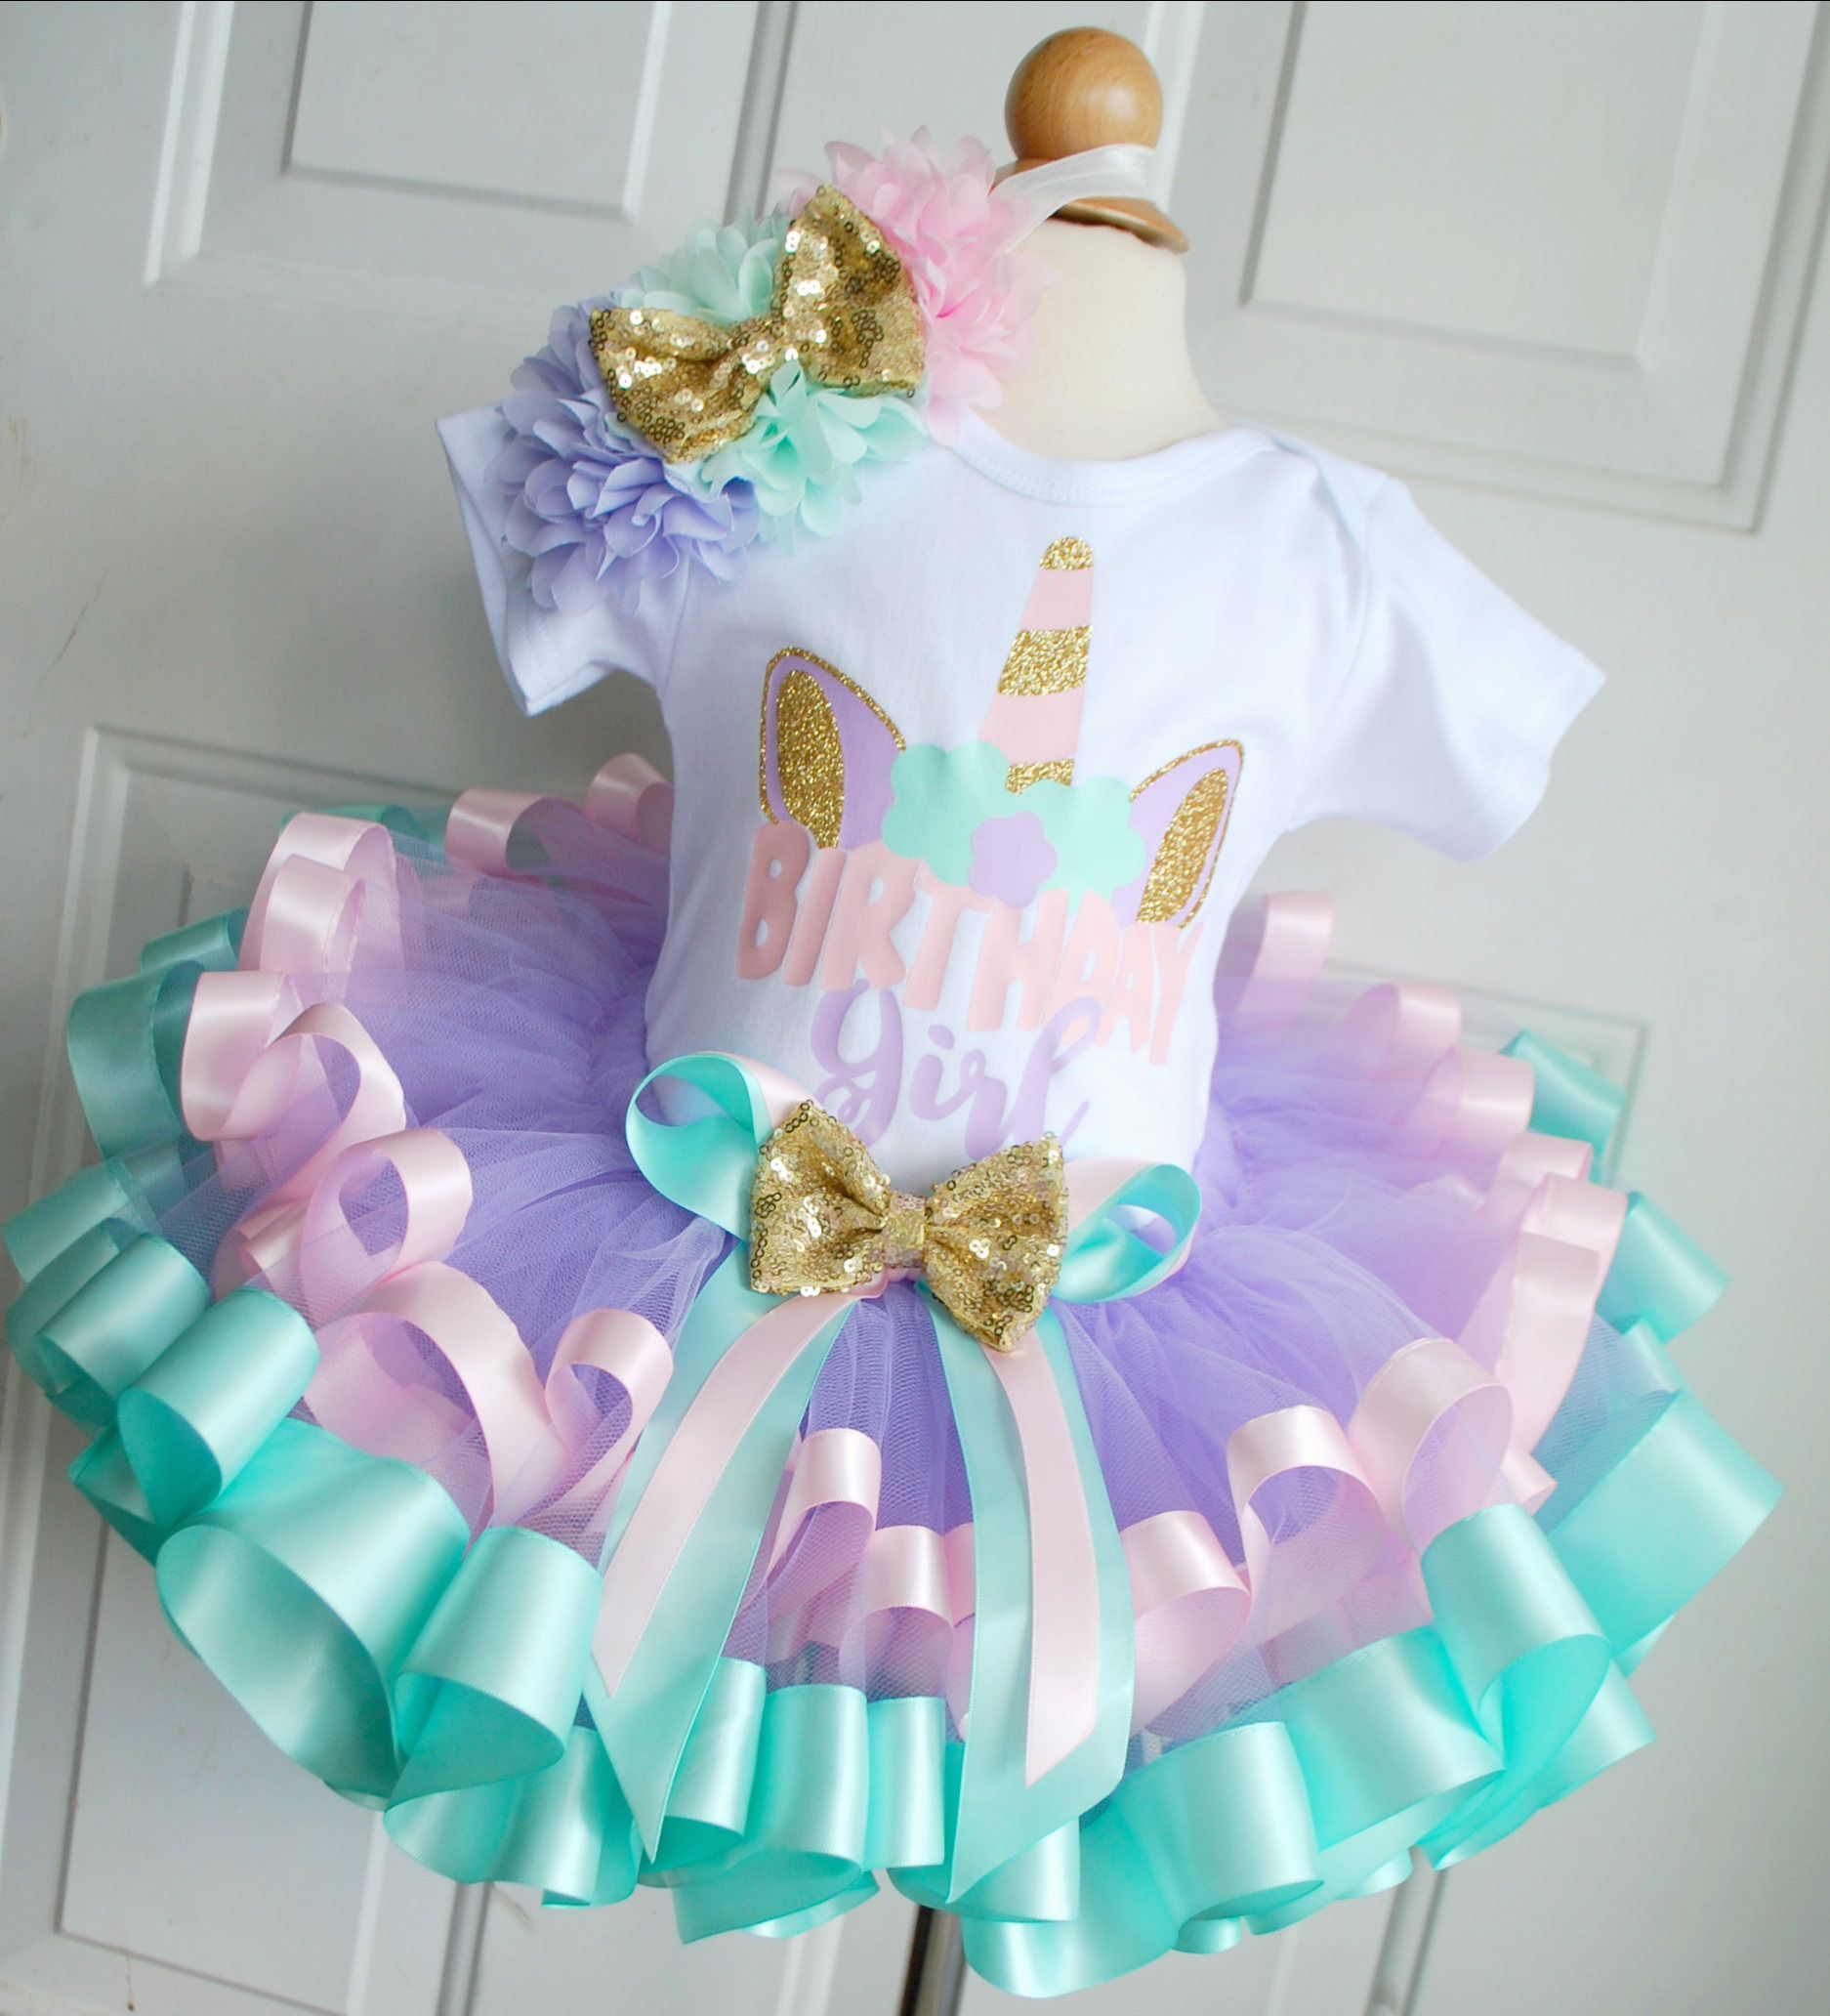 Rainy Birthday Outfit: Unicorn Birthday Tutu Outfit